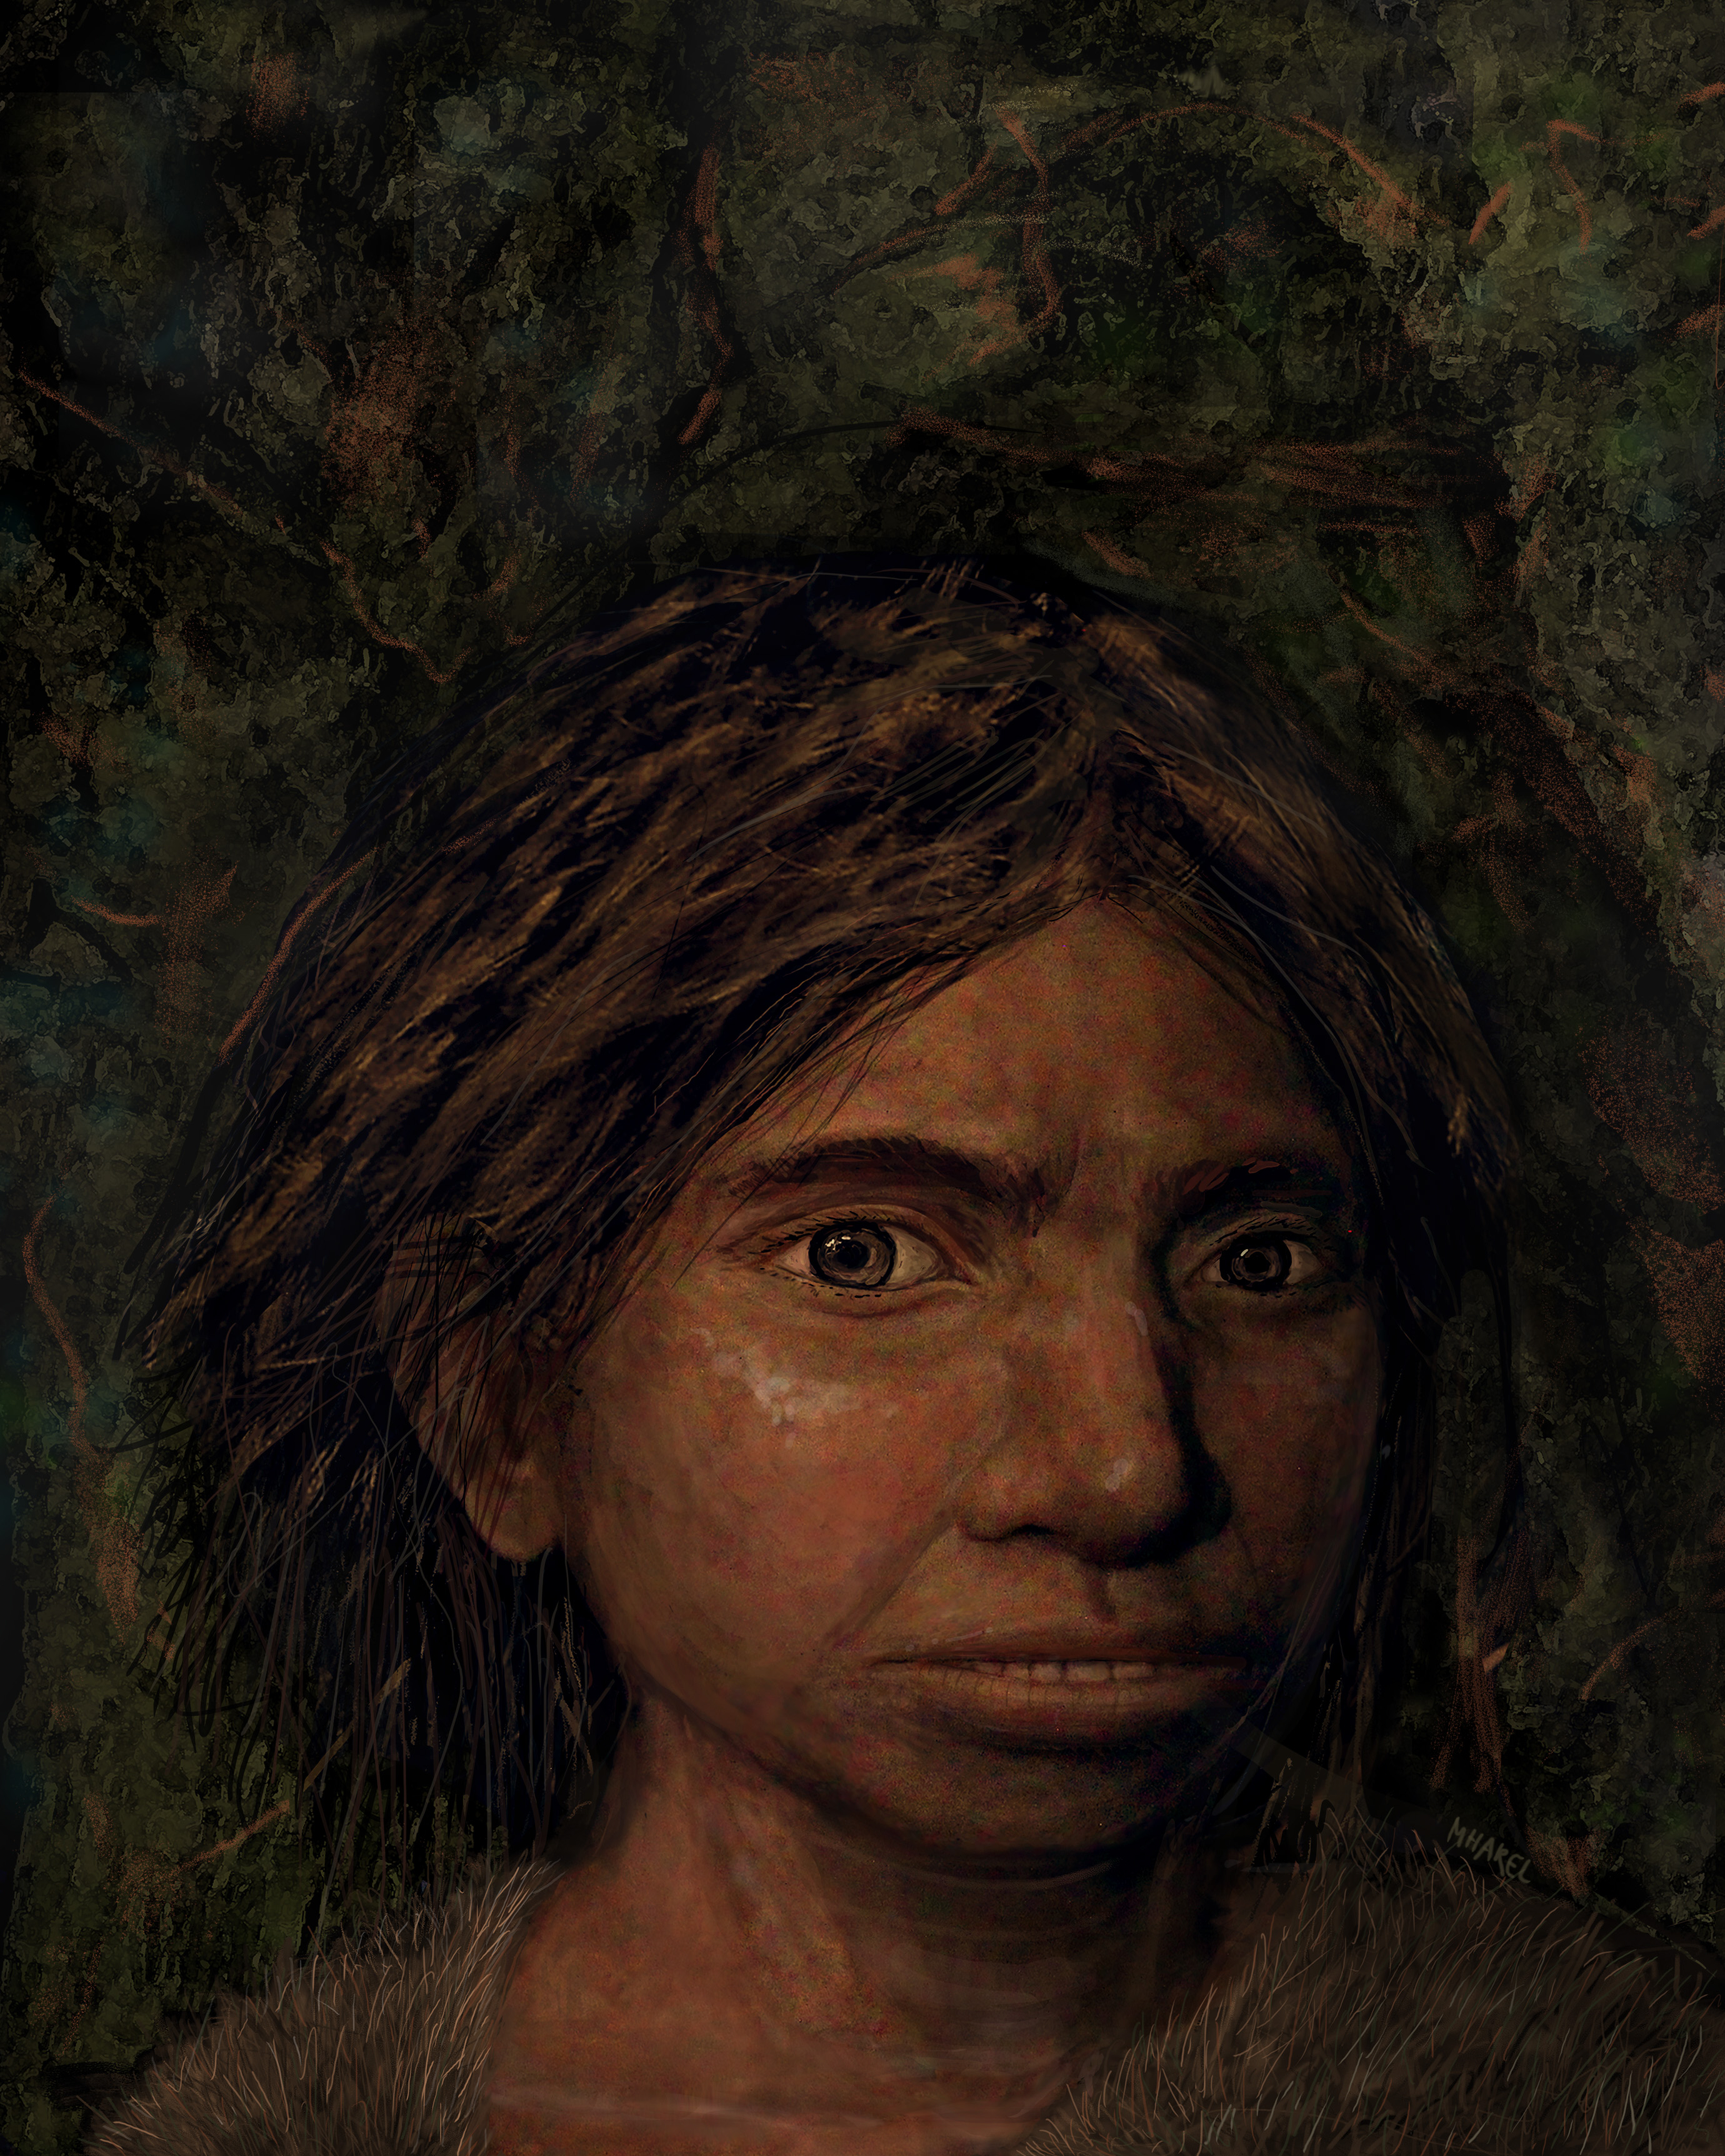 Denisovan DNA analysis reveals face of human relative